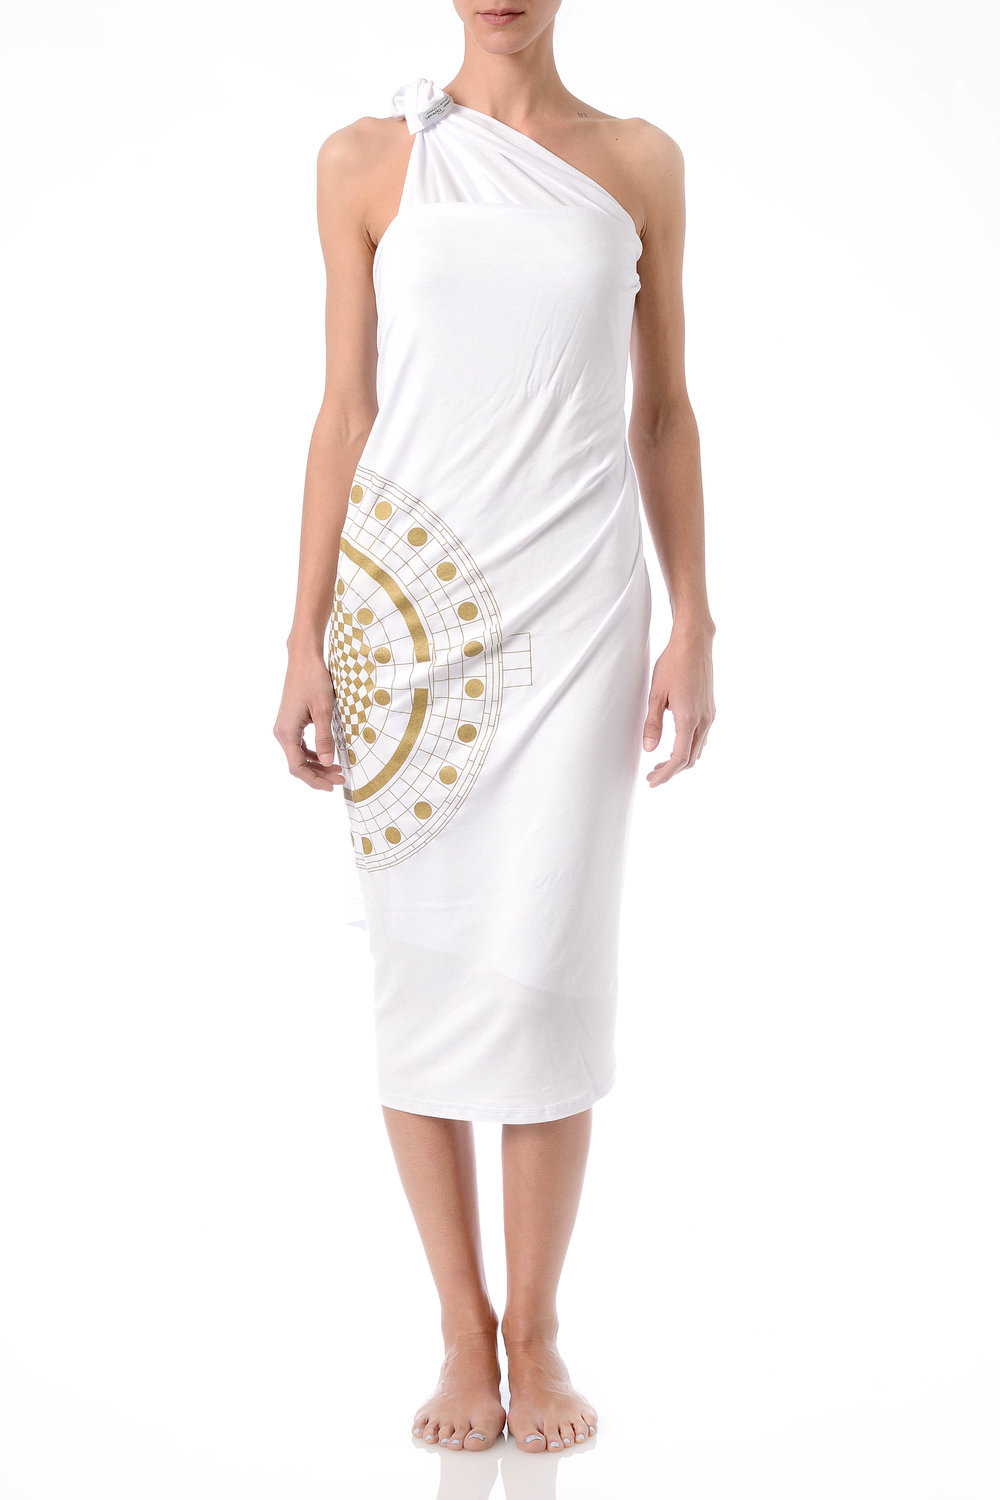 asclepius-oneshoulder-white-dress-goldenprint-beachwear2.jpg